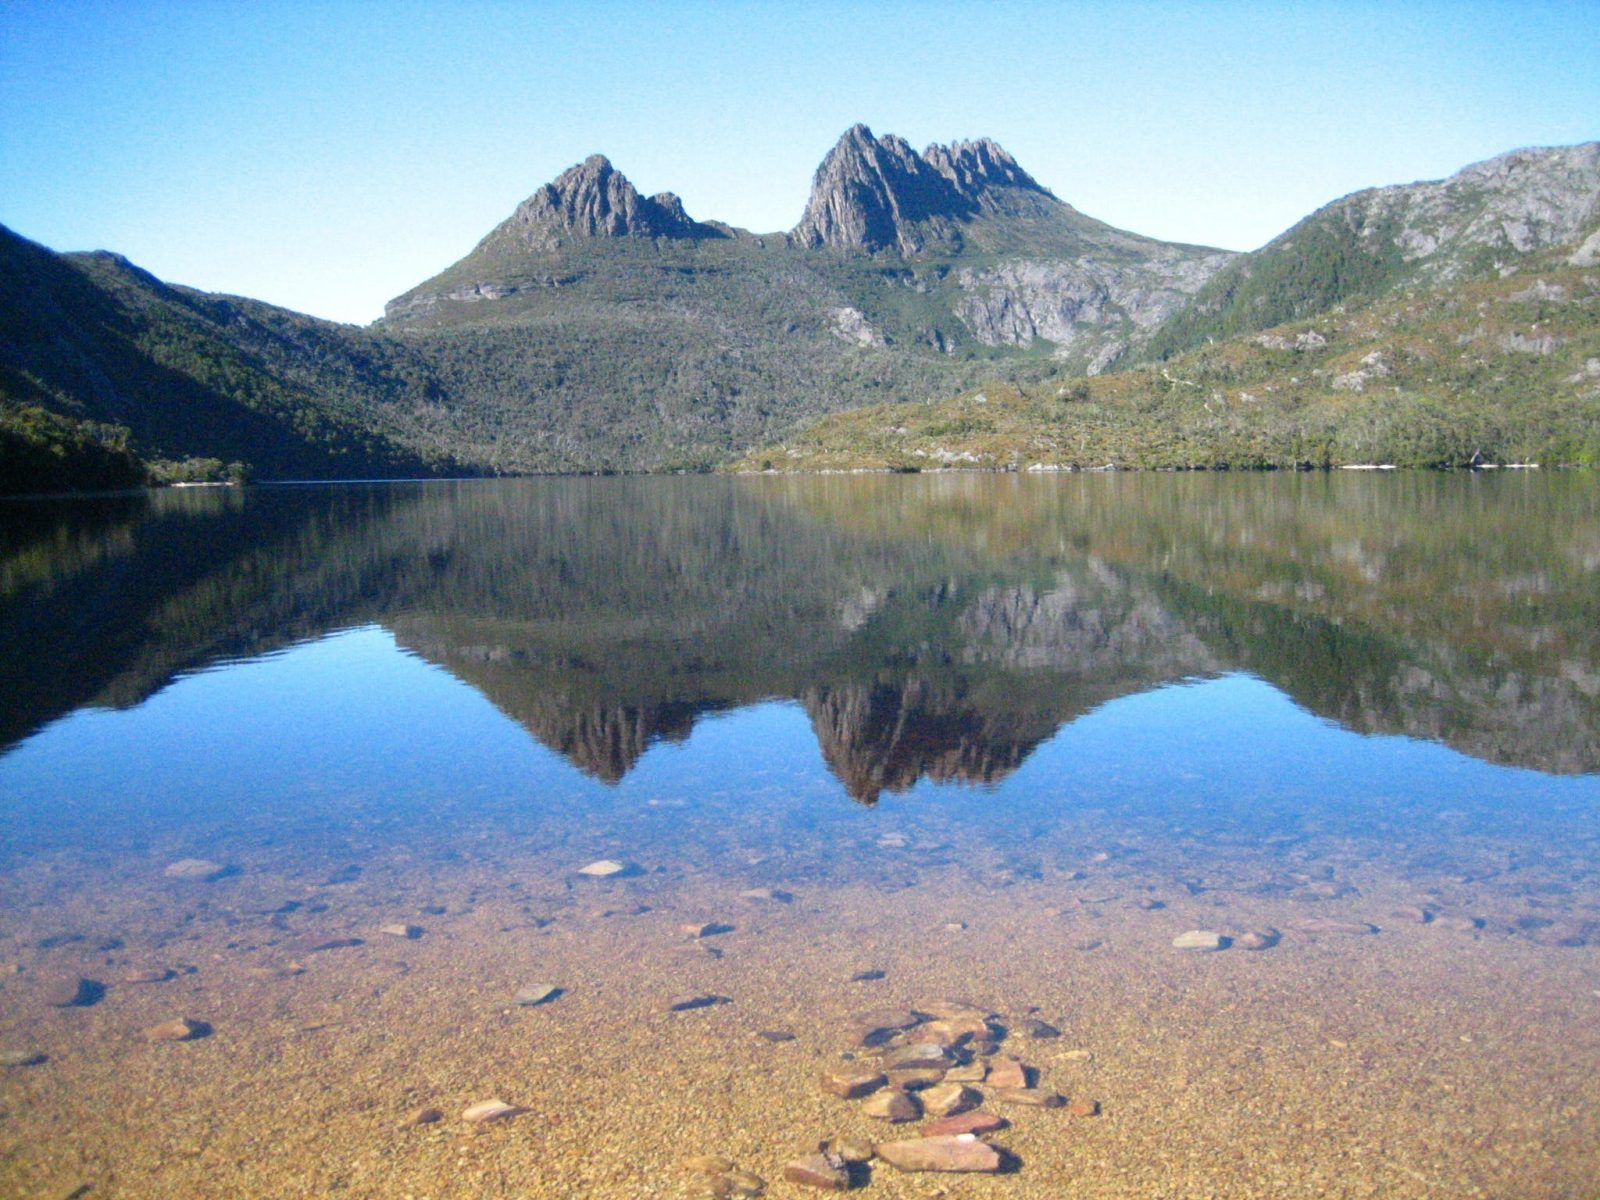 Cradle Mountain and its reflection in Dove Lake